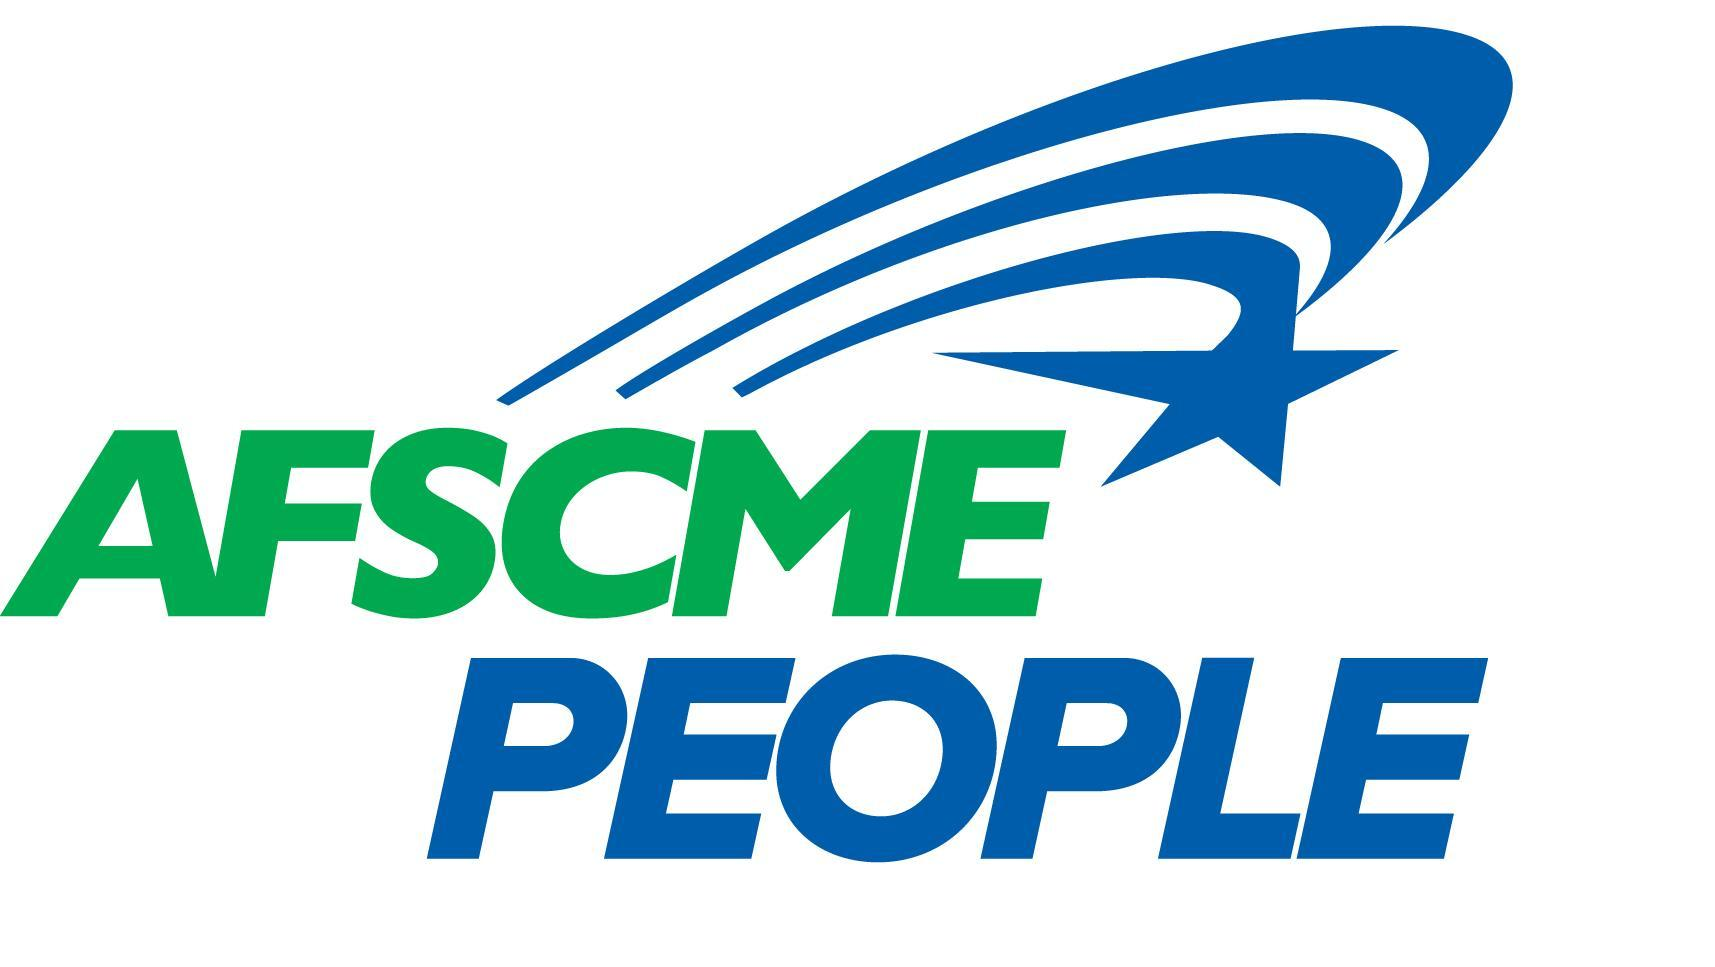 A logo featuring bold script that says ASFCME PEOPLE in blue and green, with a blue AFSCME star and swoosh above the lettering.